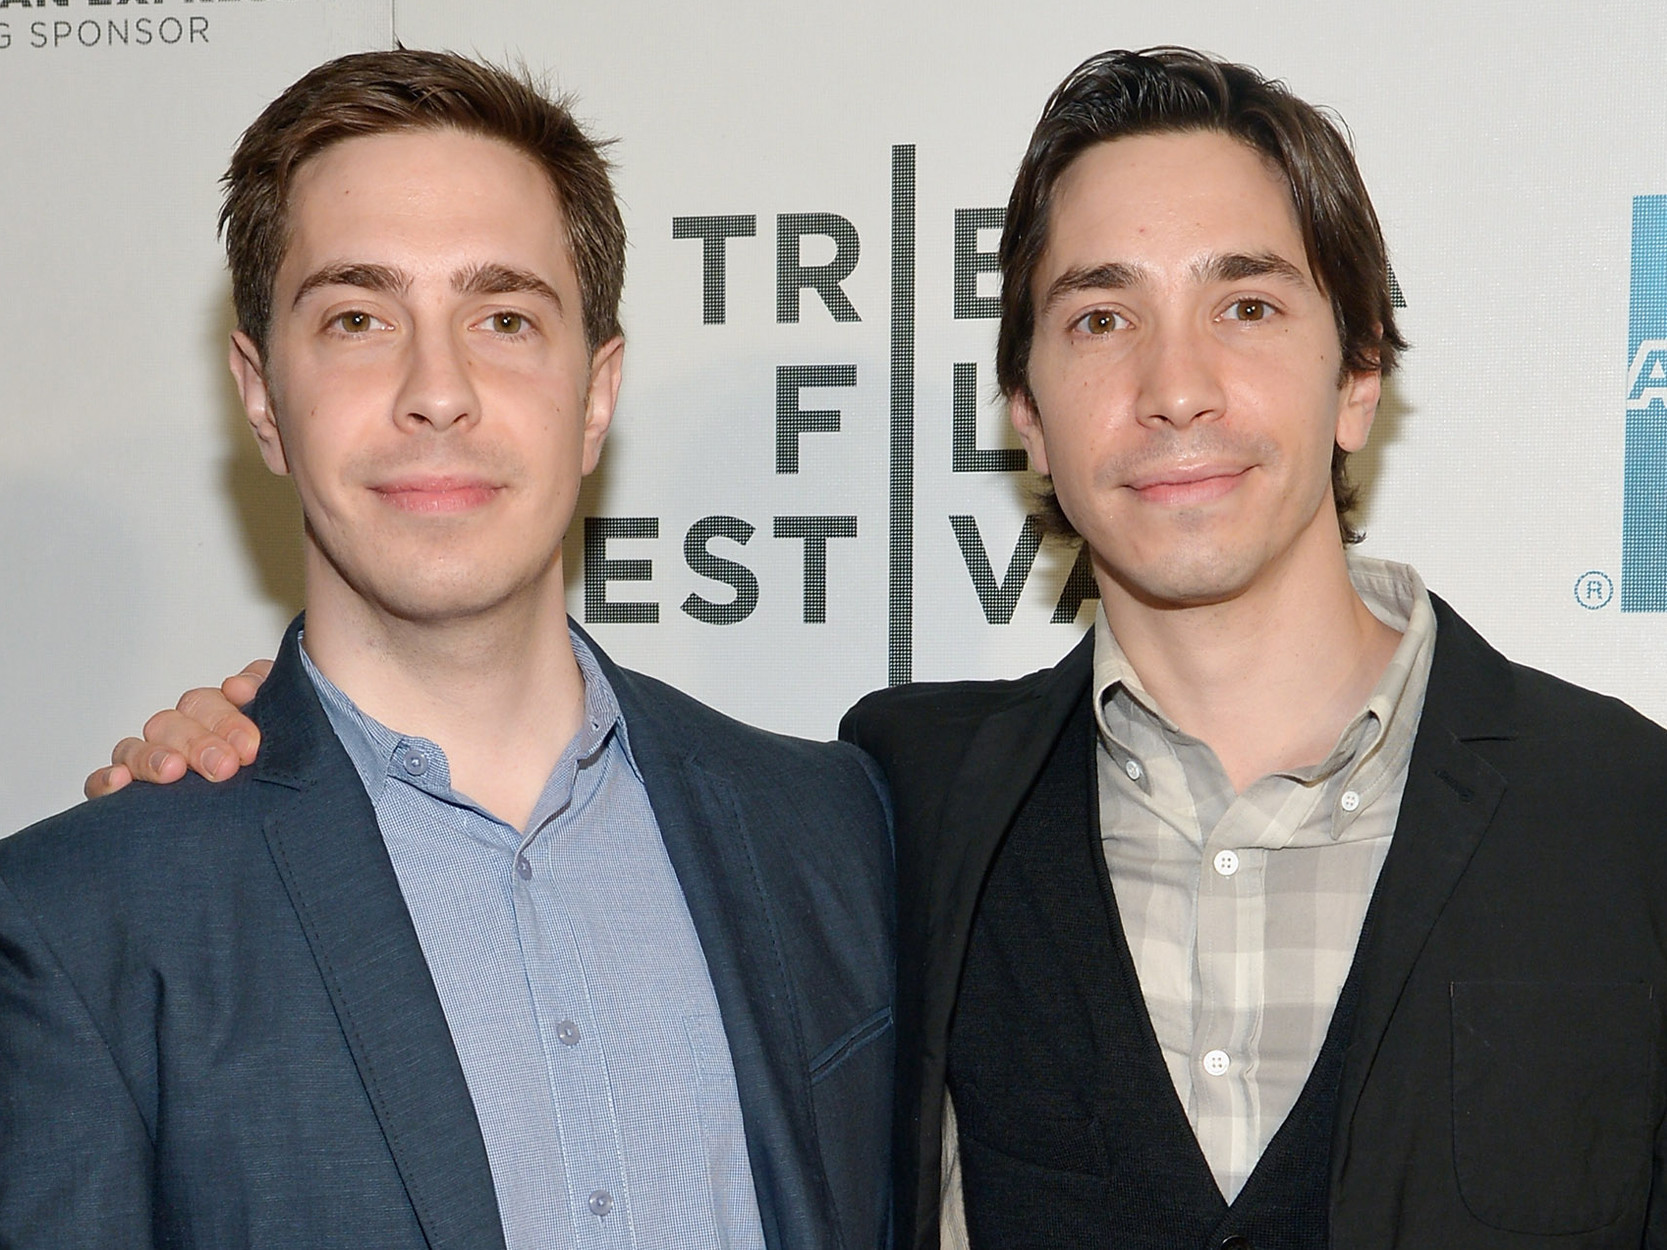 Justin Long and brother suspect they have coronavirus but can't get tested